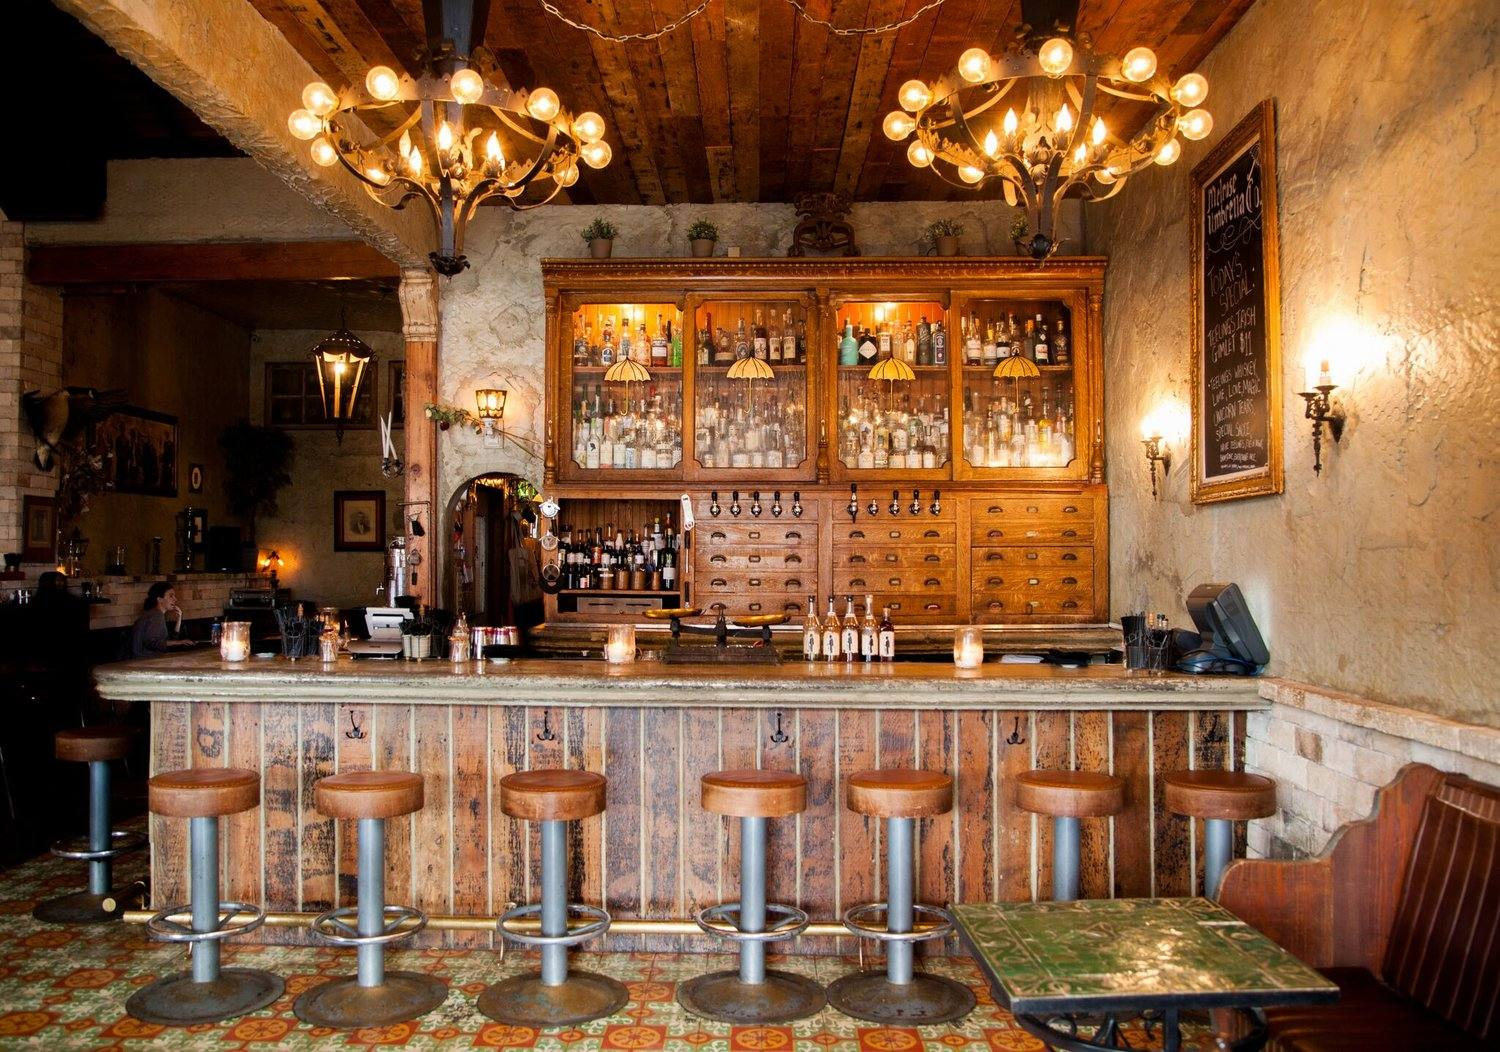 Front bar at Melrose Umbrella Co. in West Hollywood